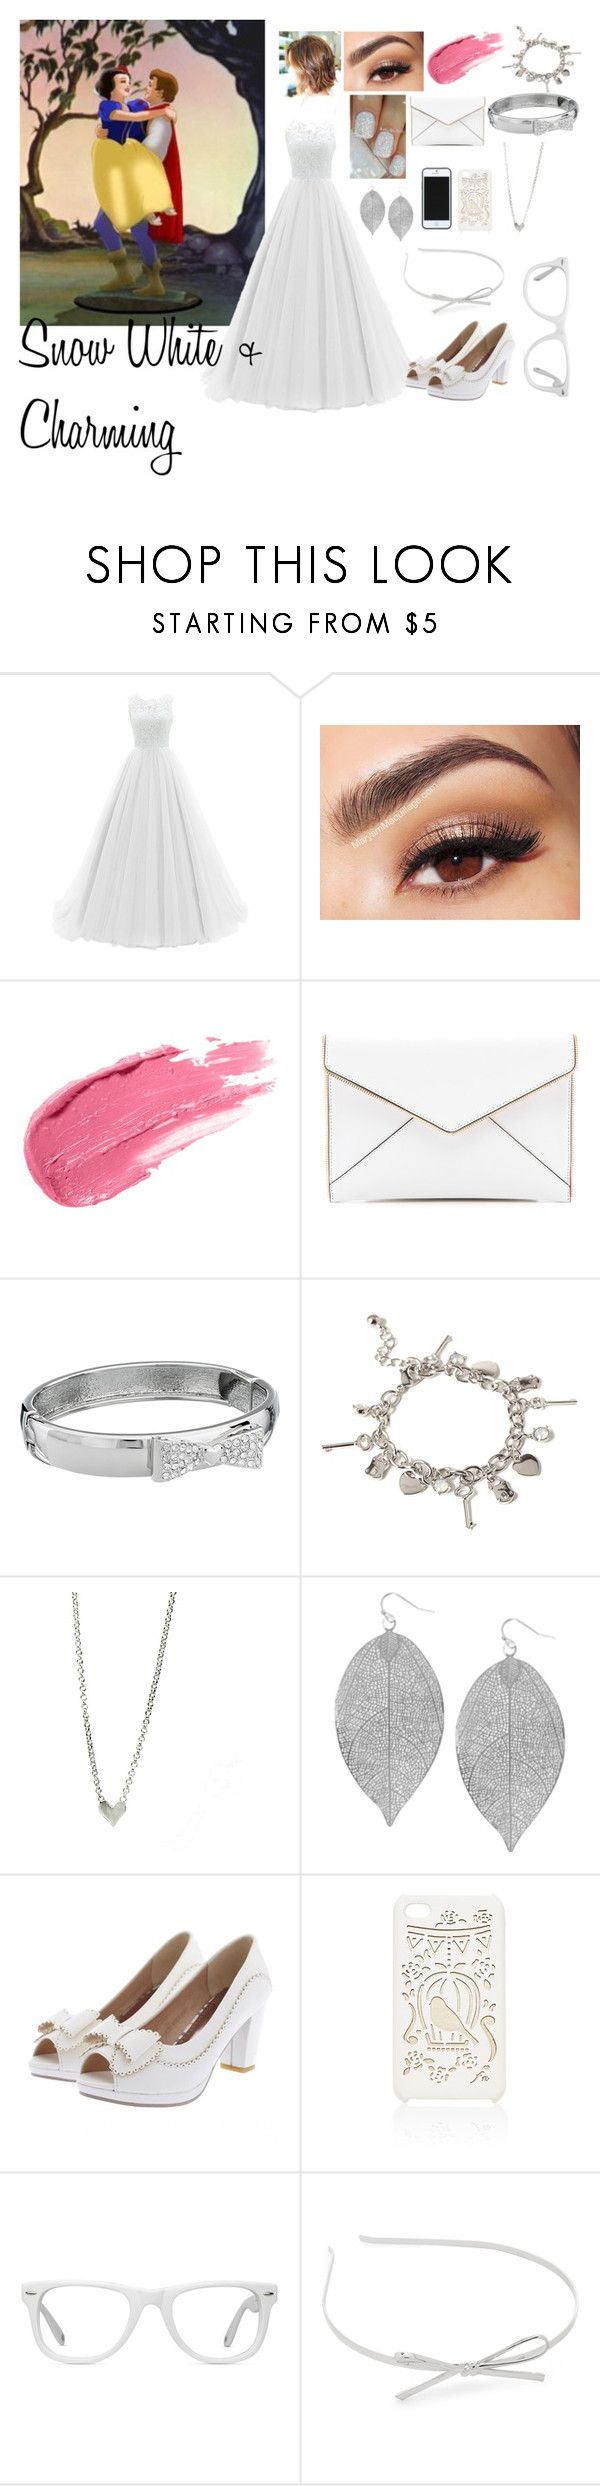 """""""Prom Night Snow White and Charming"""" by blackest-raven ❤ liked on Polyvore featuring Lancôme, Rebecca Minkoff, Betsey Johnson, Forever 21, Humble Chic, Gizmal Boots, Kate Spade Saturday, Forever New, Muse and Kate Spade"""